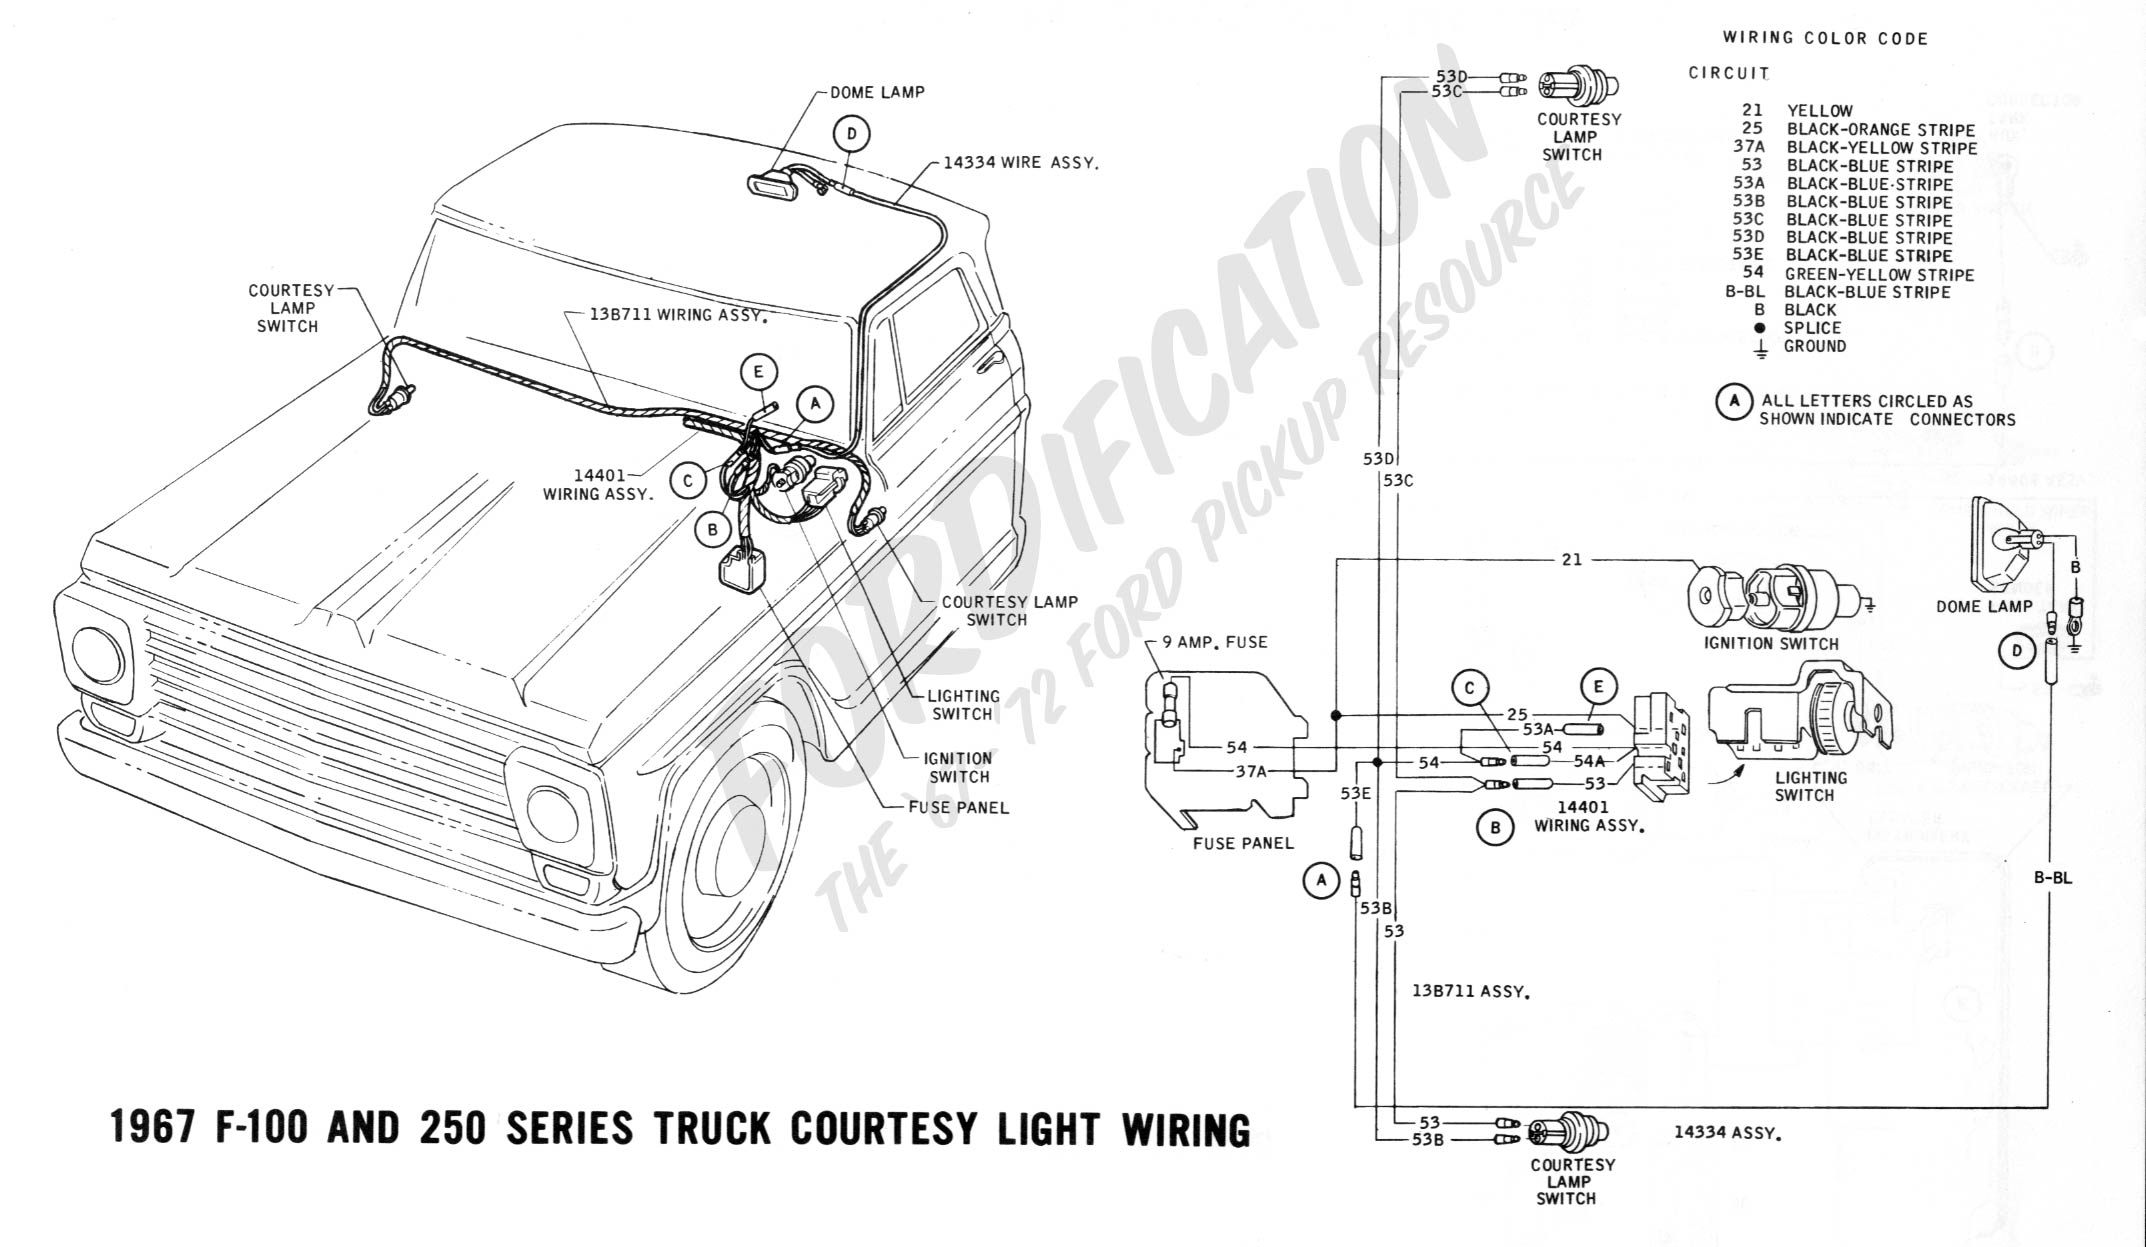 1966 f 100 wiring diagram 1960 f100 turn signal ford truck wire rh linxglobal co